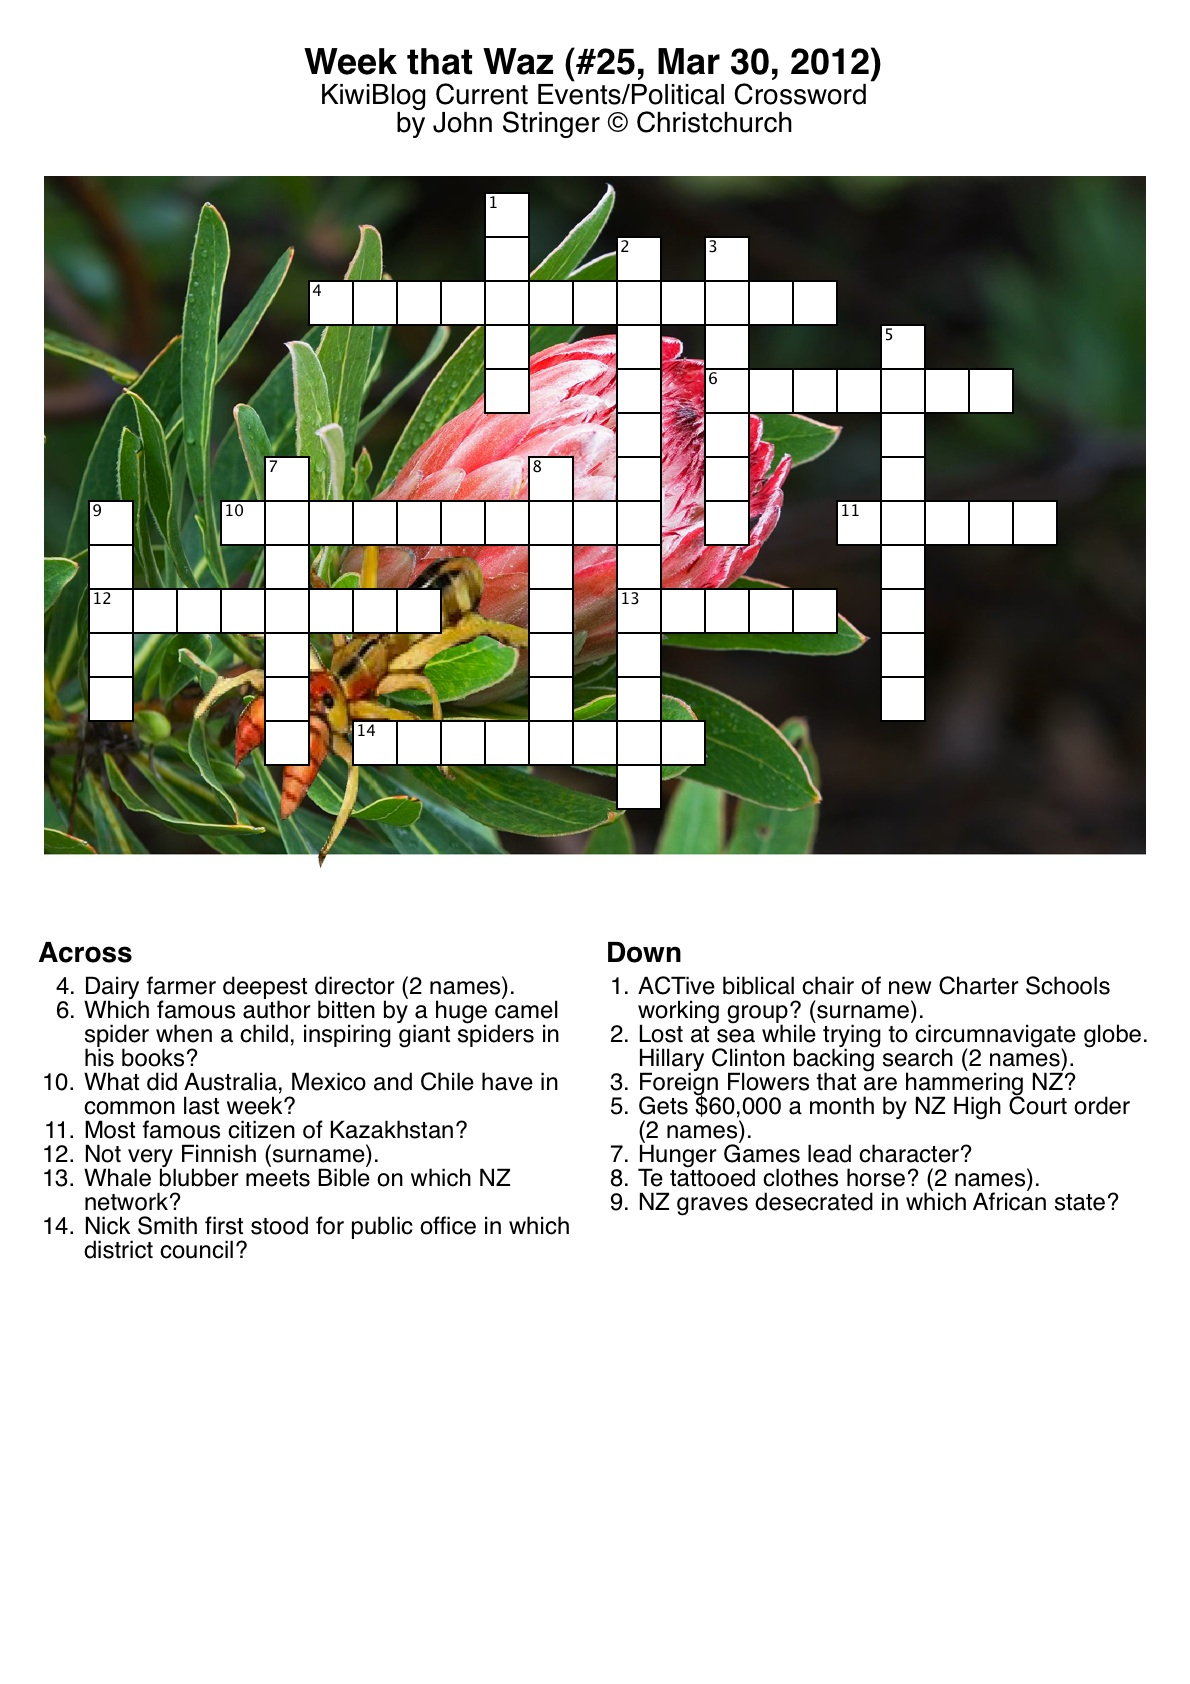 20120330_Crossword